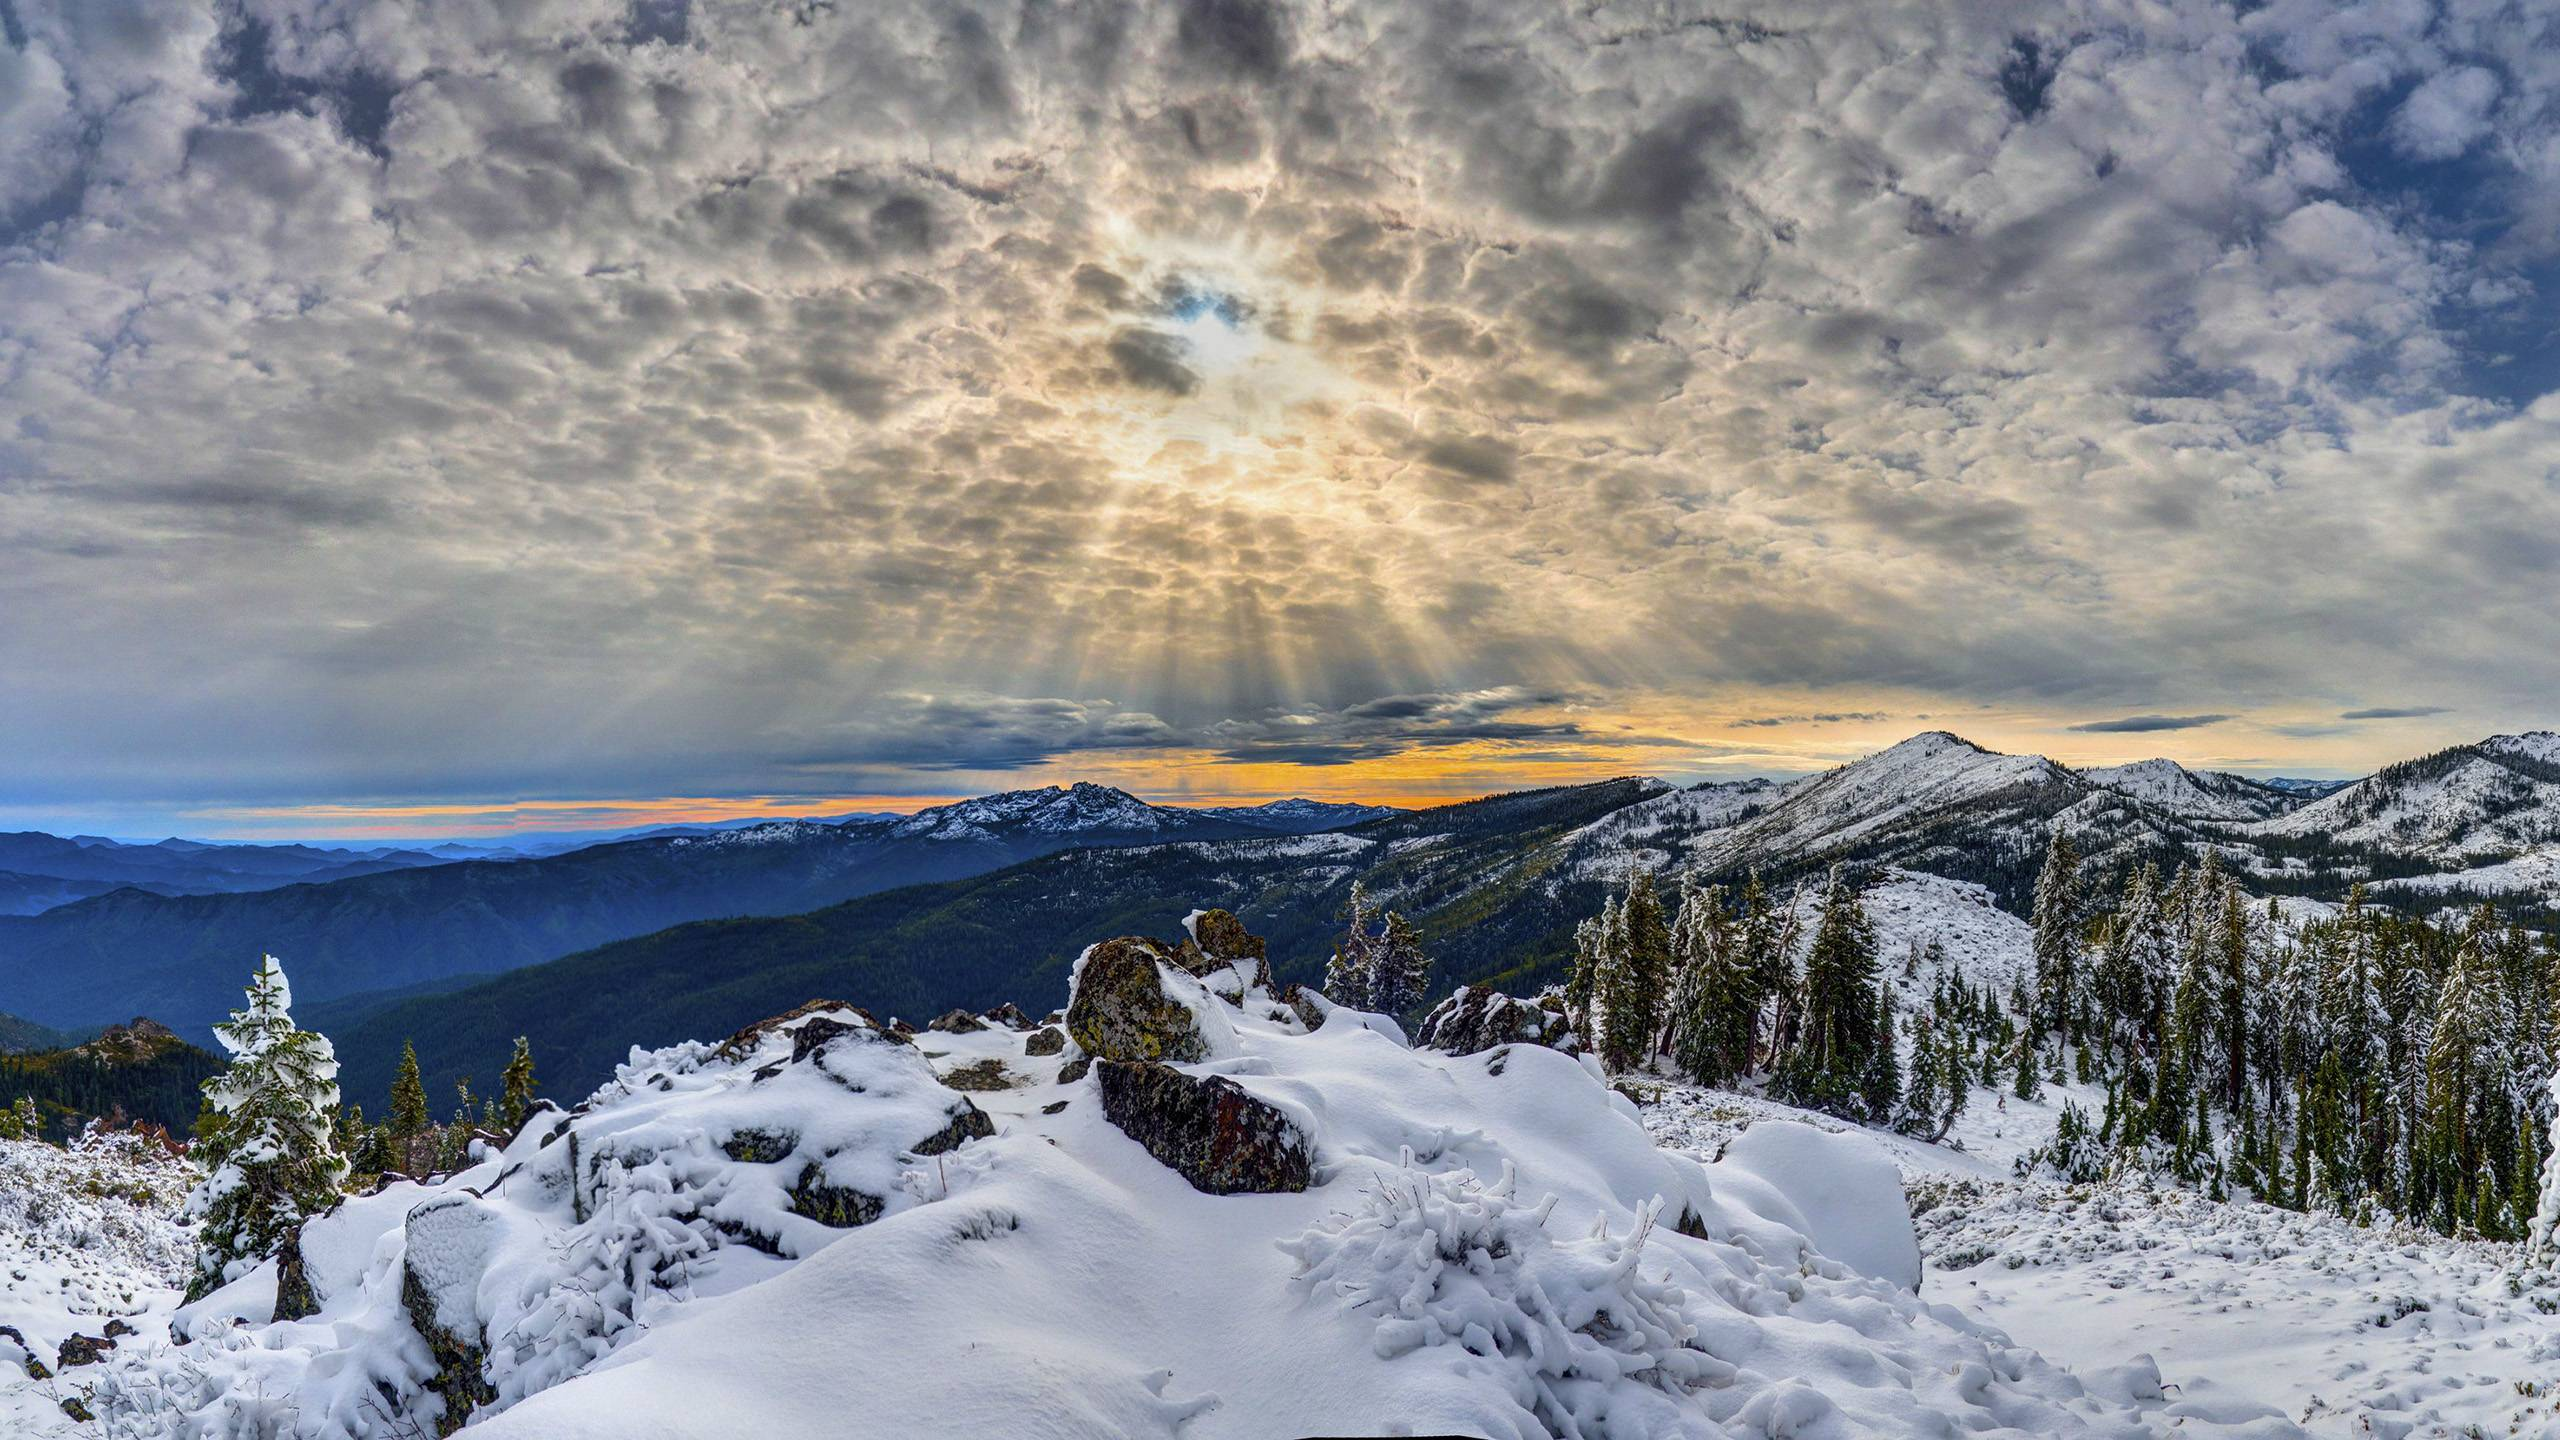 Corona and Crepuscular Rays over the Klamath Mountains of Northern 2560x1440